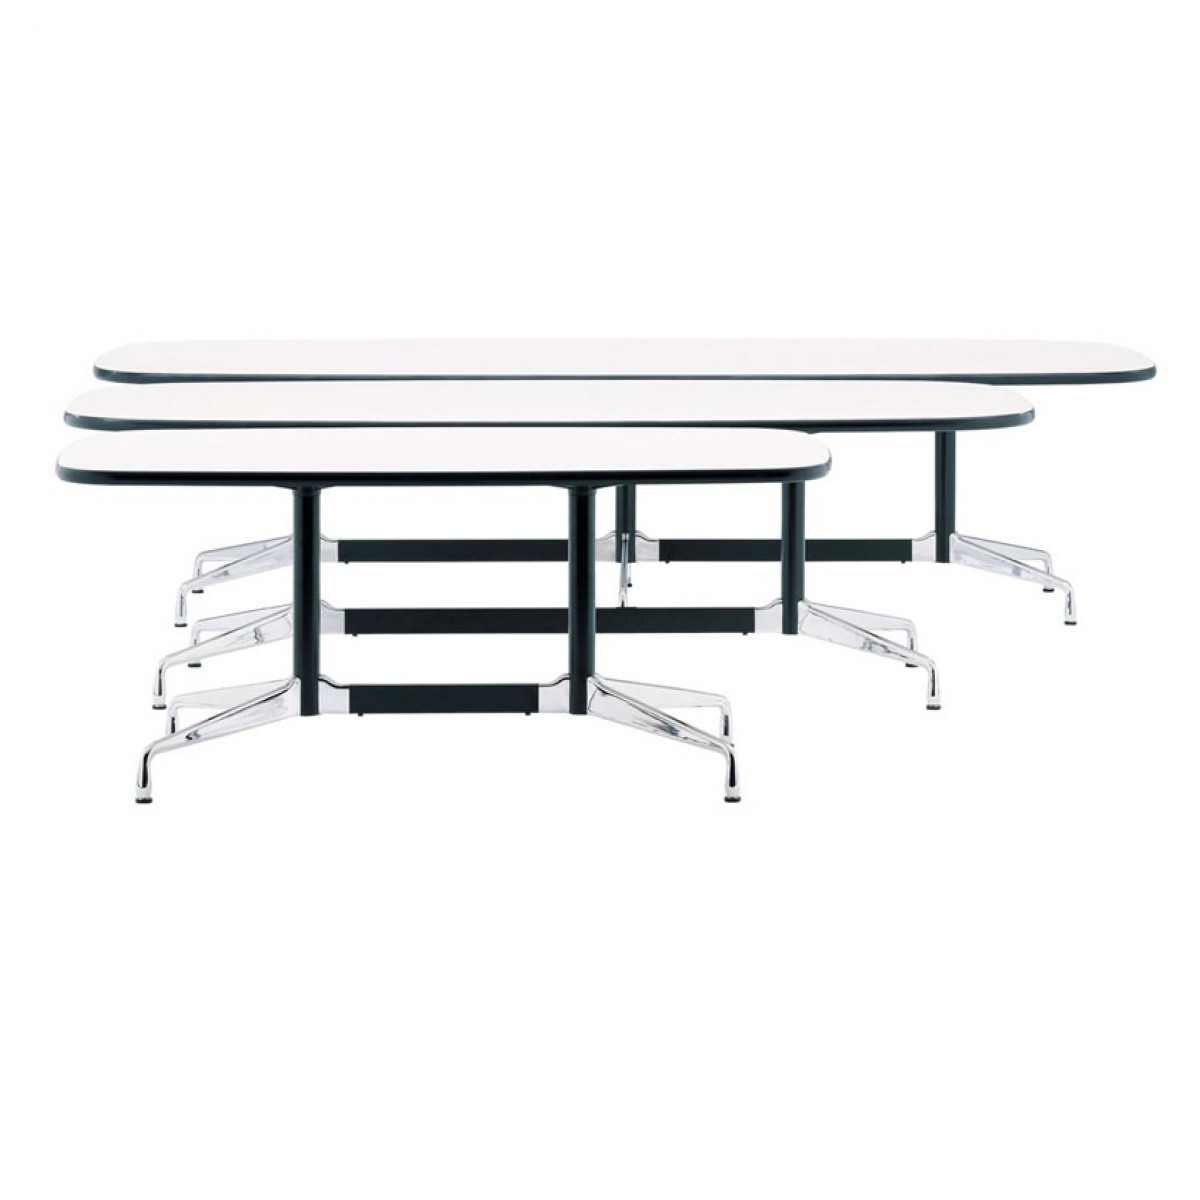 Eames Vitra Table Vitra Eames Table Segmented Table Von Goodform Ch